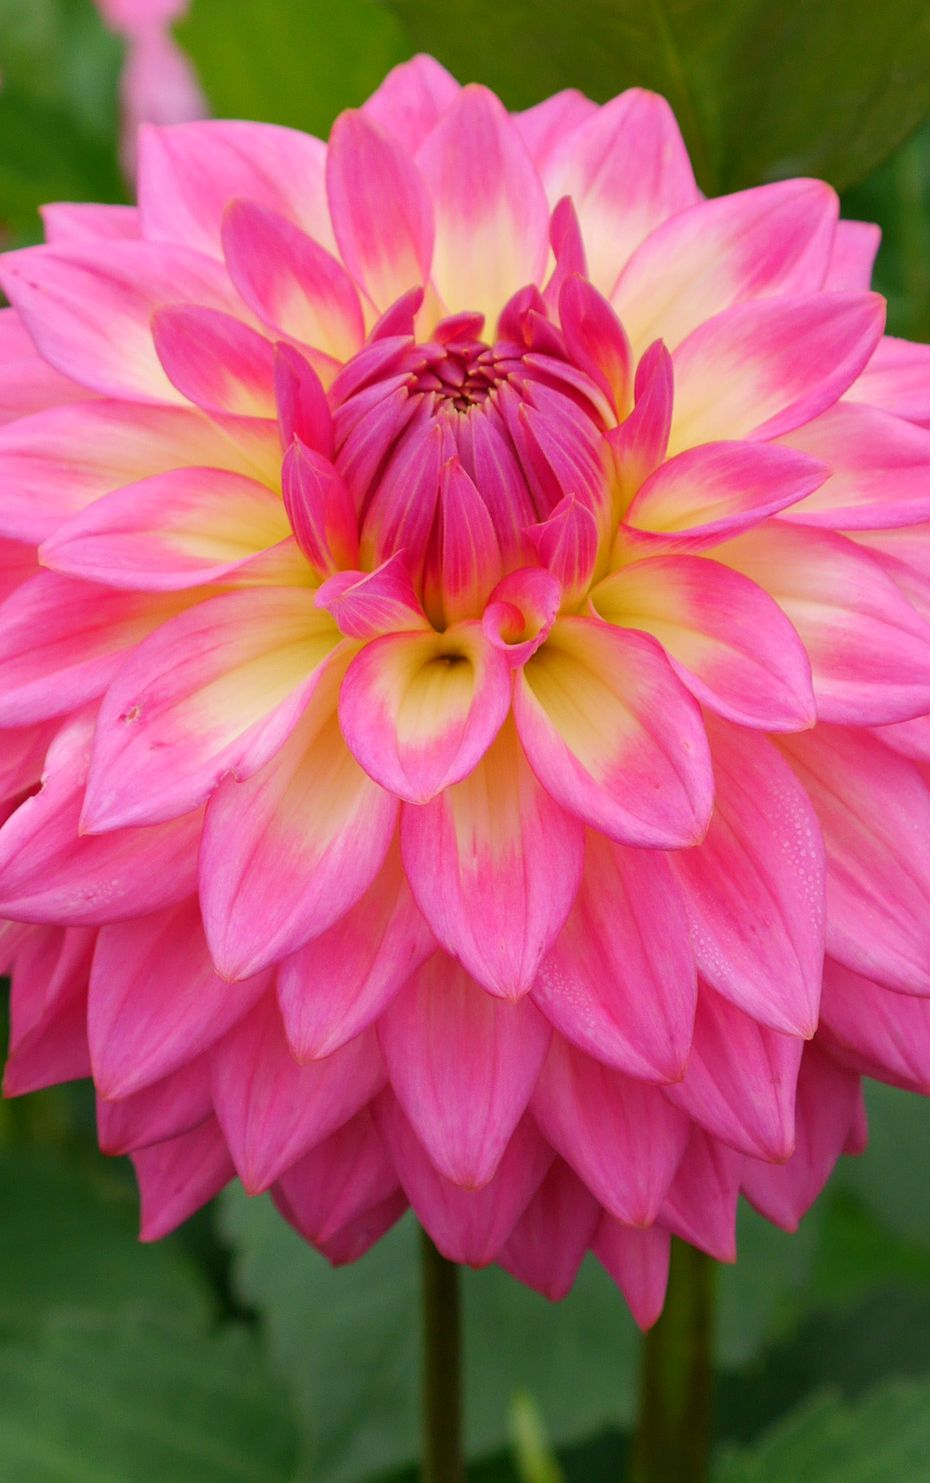 Bloomquist Parasol Dahlia a vibrant showy Pink and Yellow with